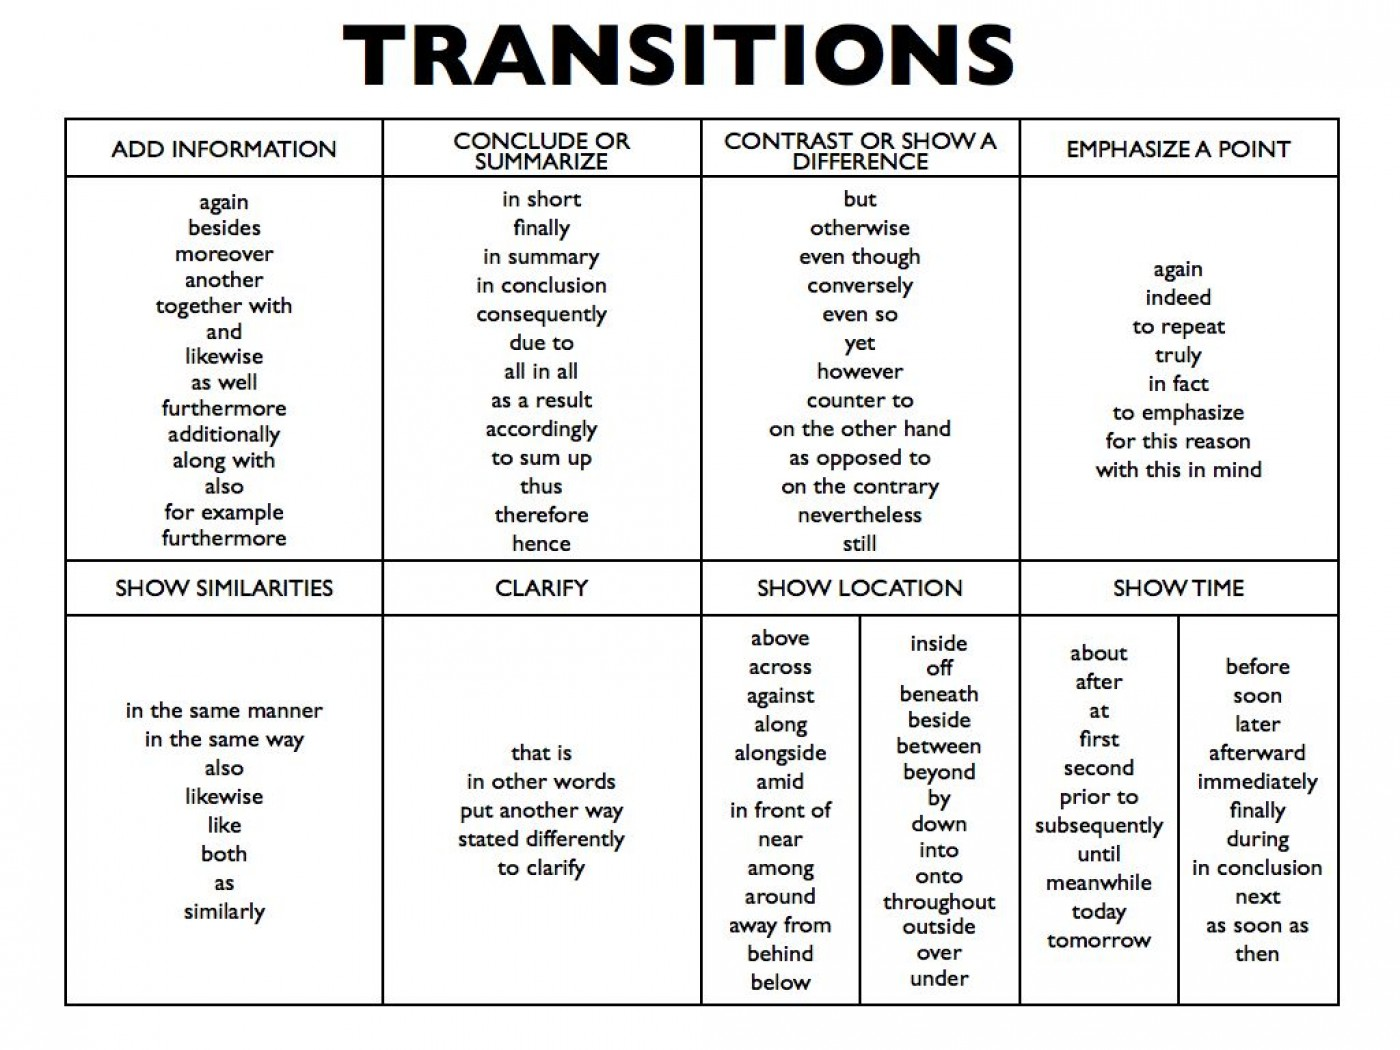 005 Essay Example Transitions 4995883 1 Orig Archaicawful Transition Sentence Examples Words And Phrases List 1400